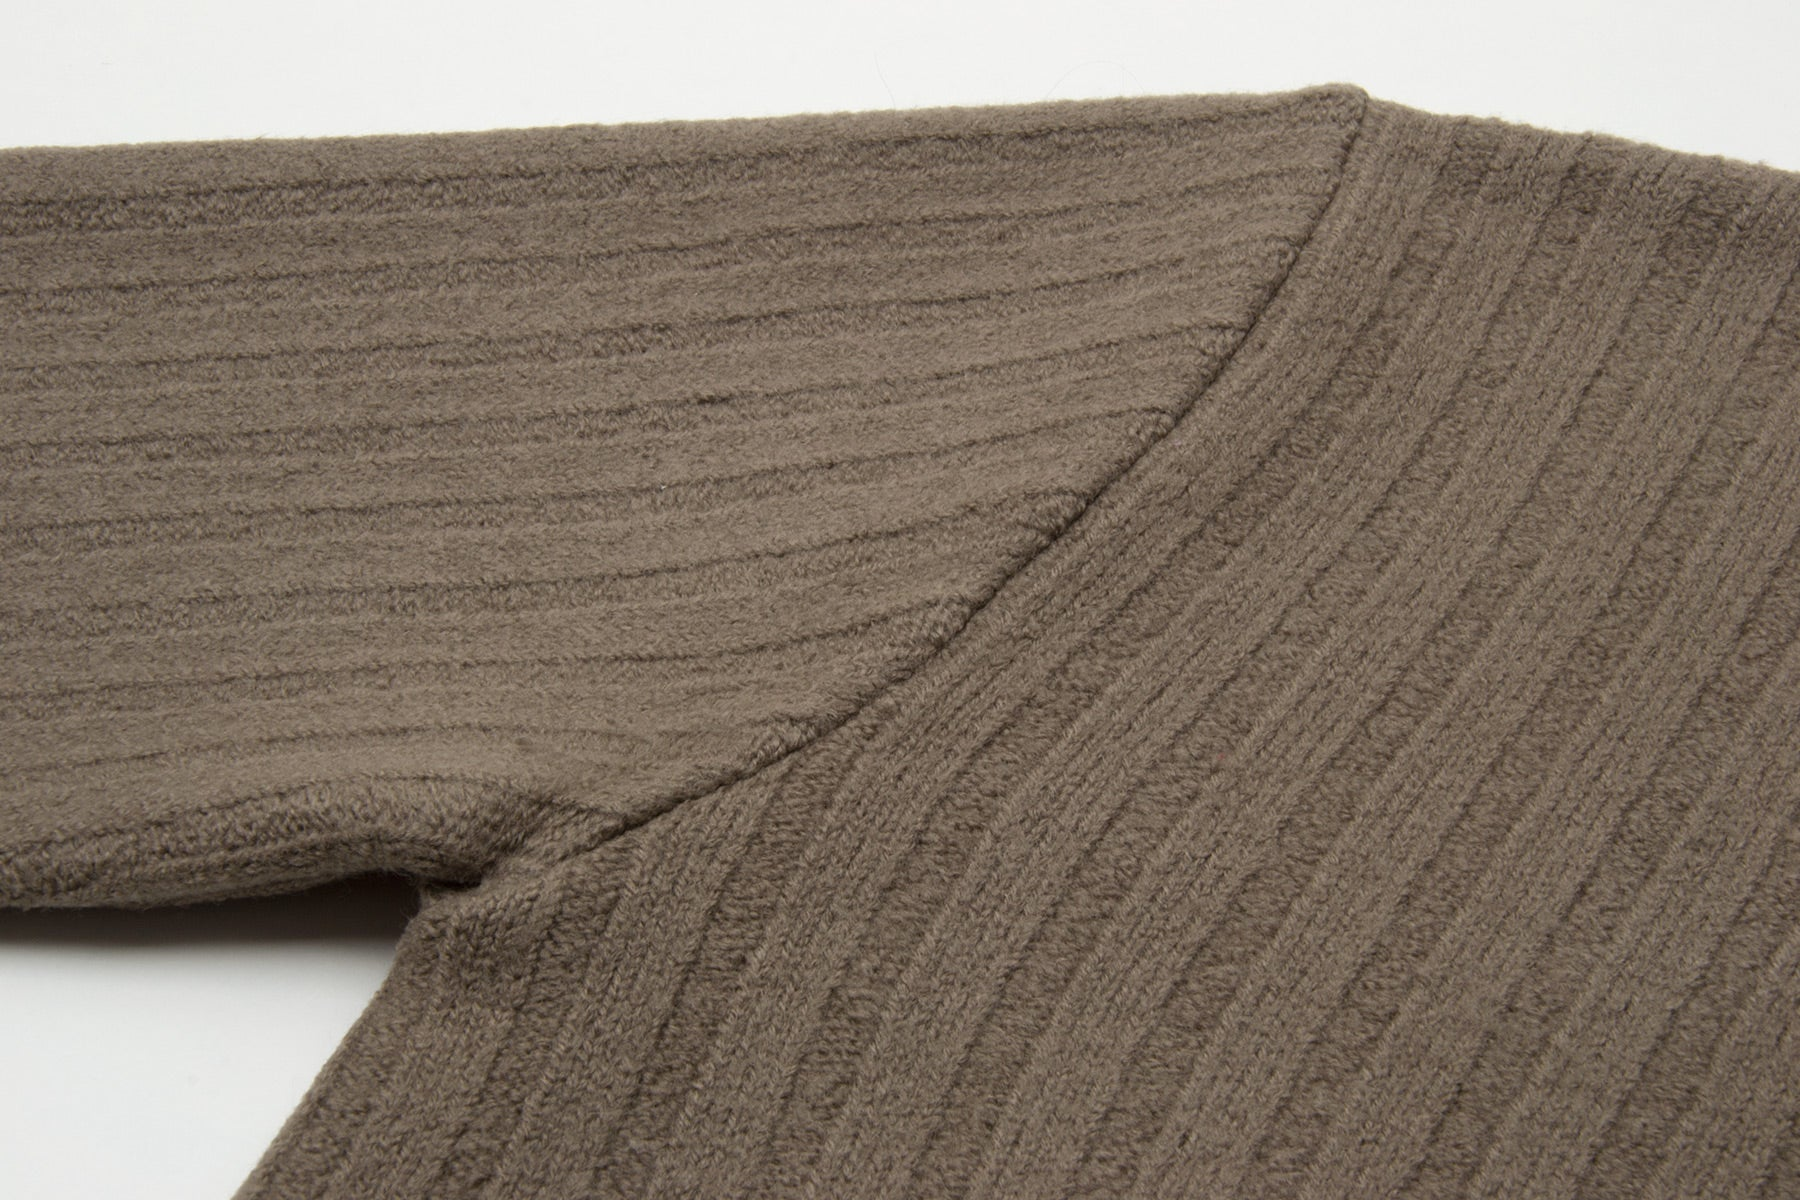 2003 A/W BOILED WOOL CREWNECK SWEATER BY MISS DEANNA